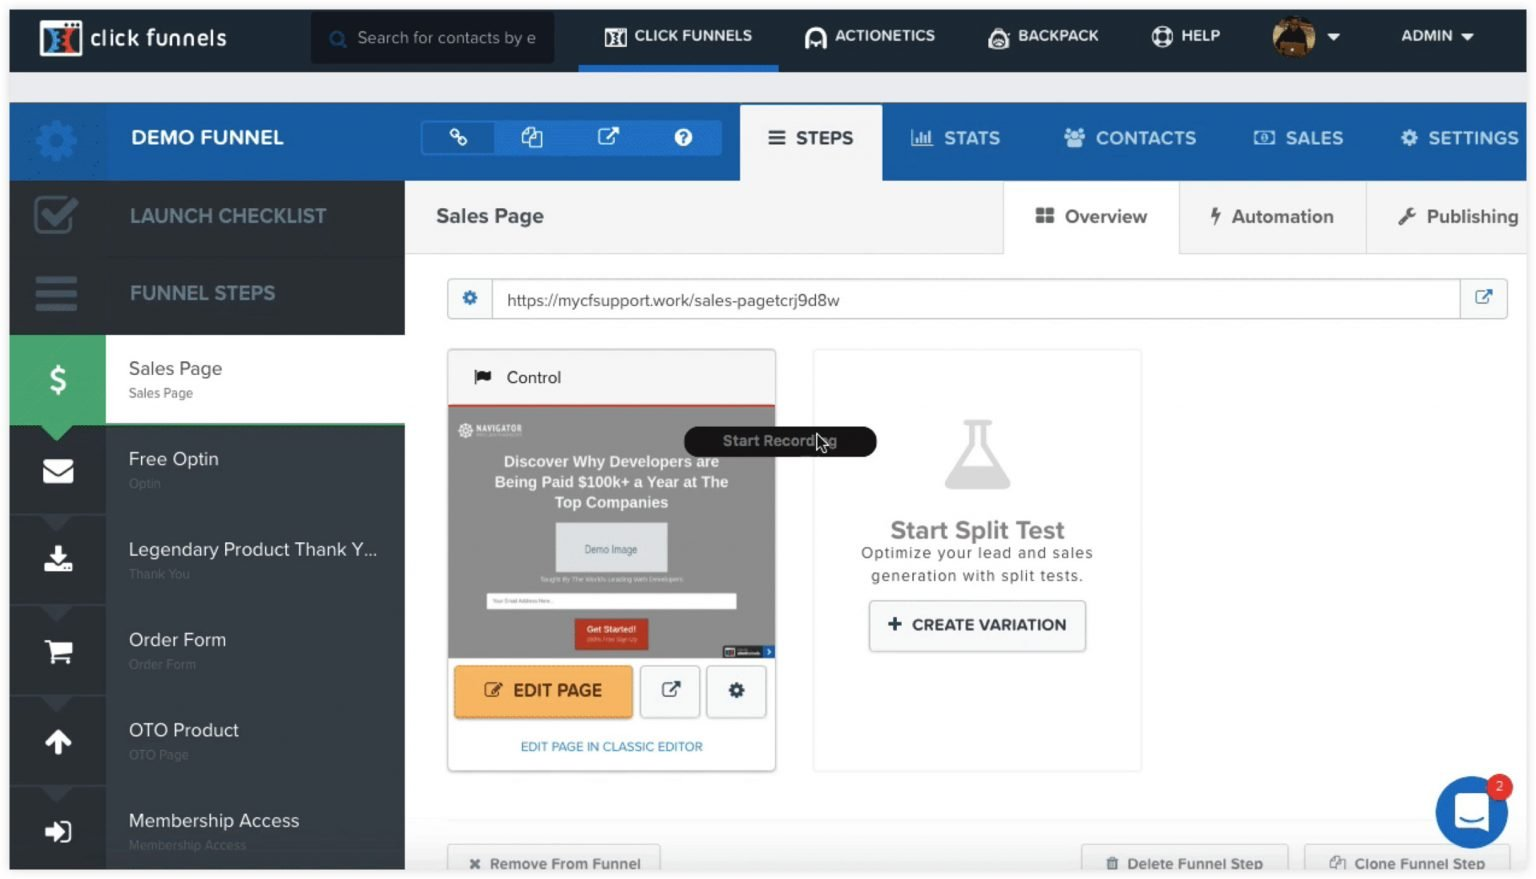 clickfunnels landing page buiilder - best free trial- high converting pages - create checkout page template - features clickfunnels free